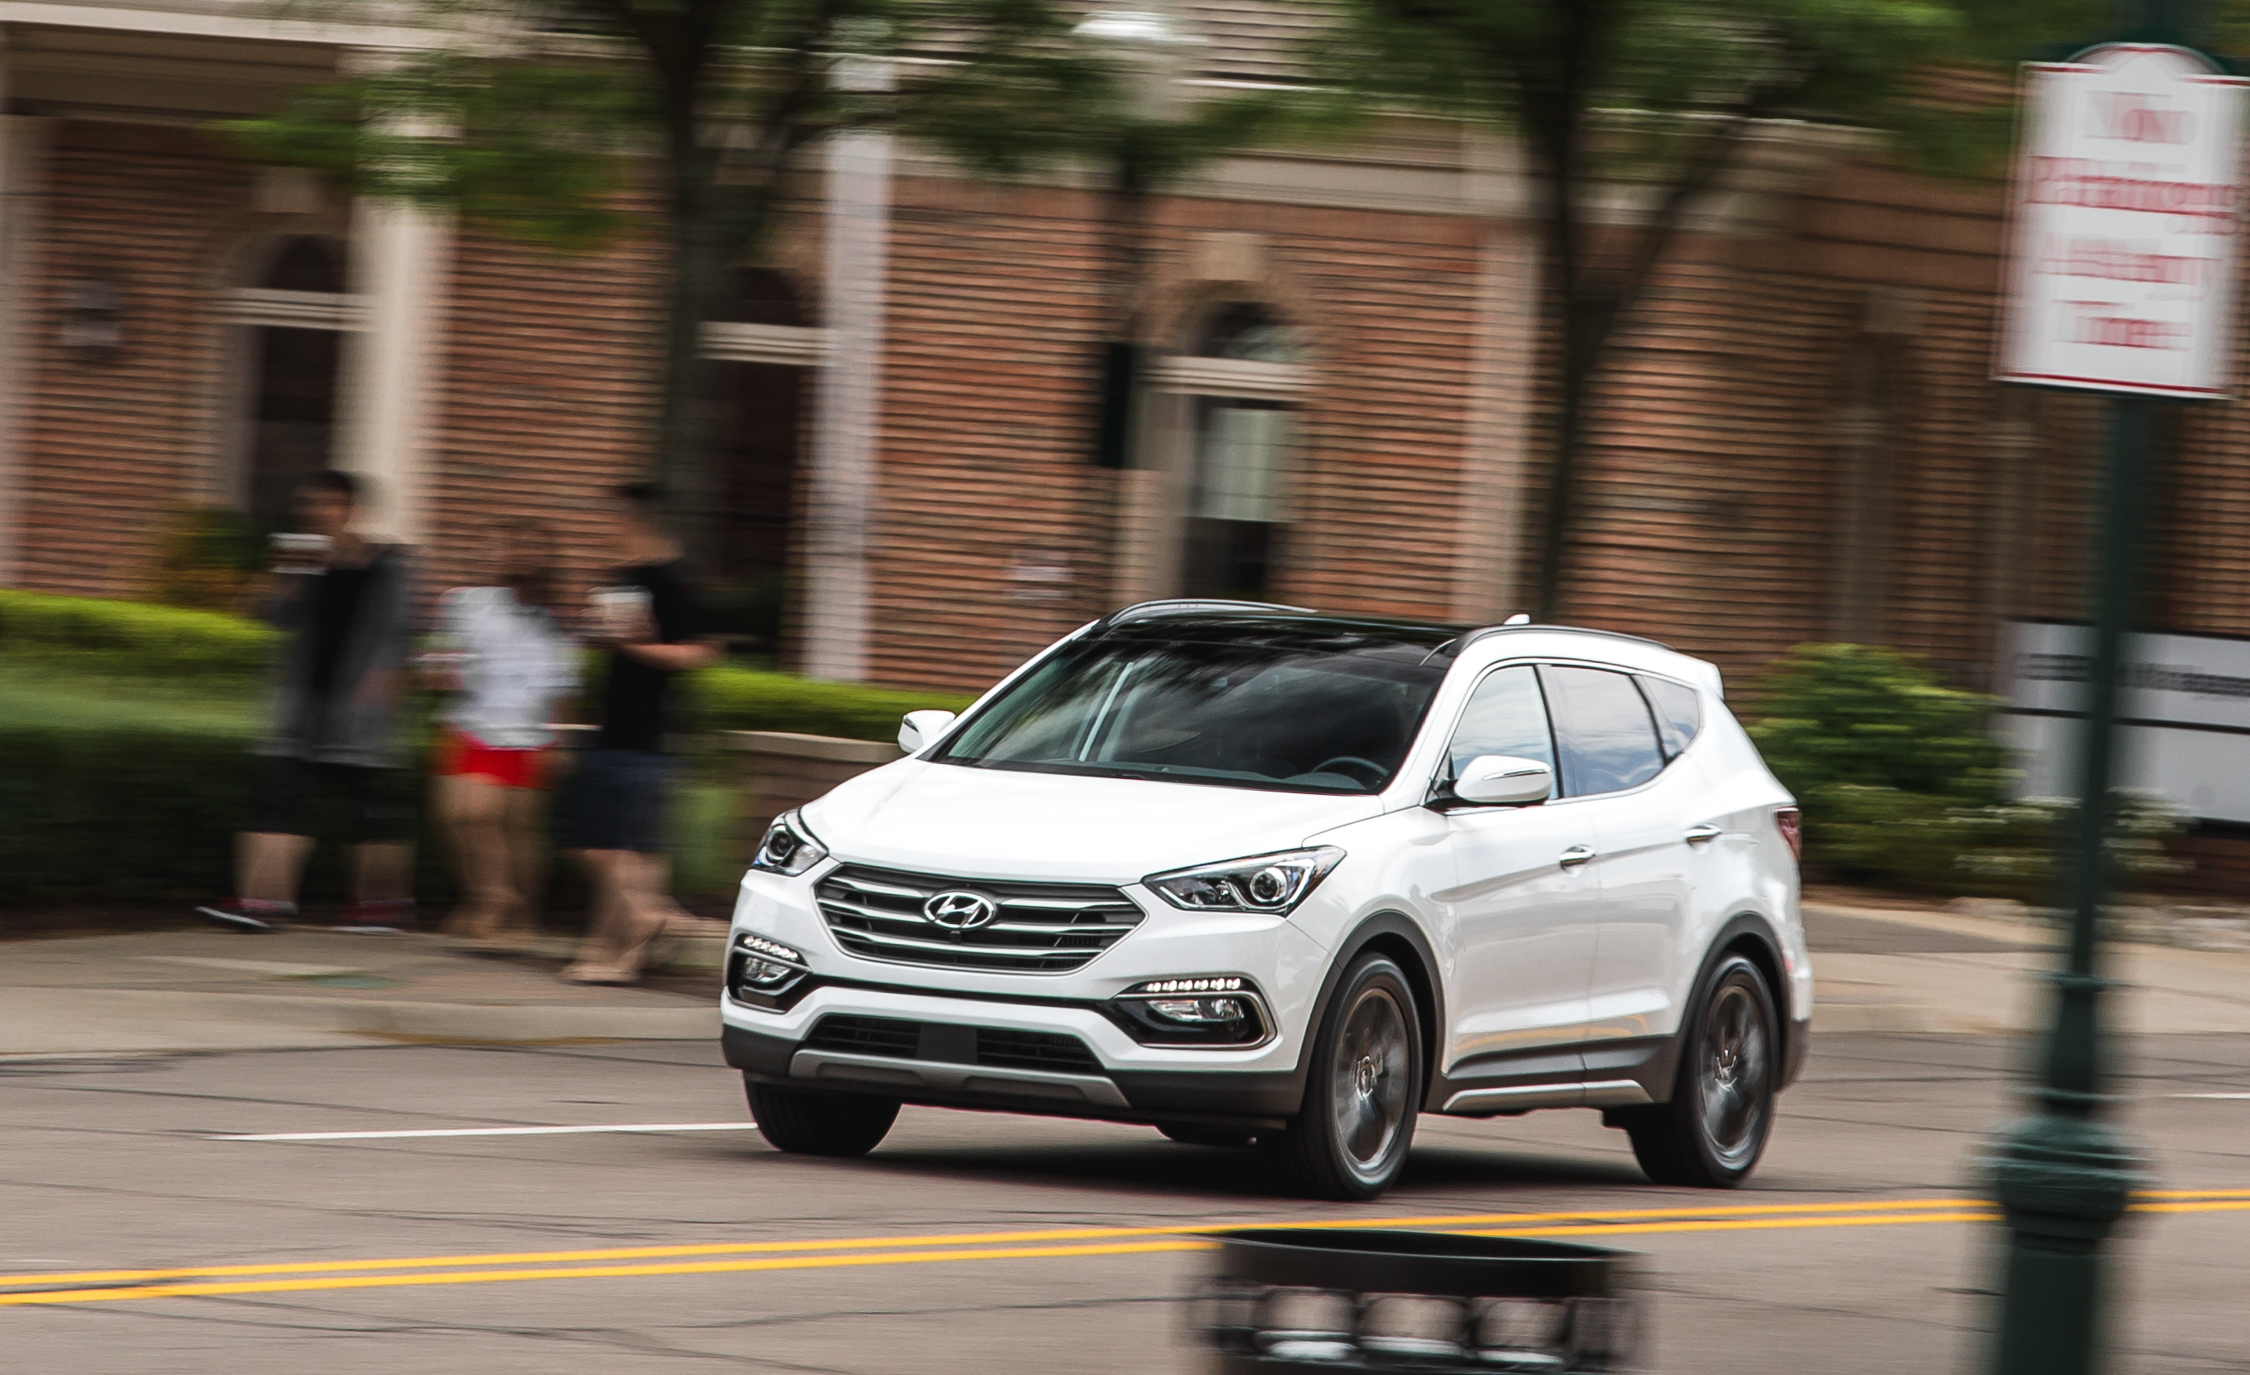 2017 Hyundai Santa Fe Test Drive (Photo 9 of 12)